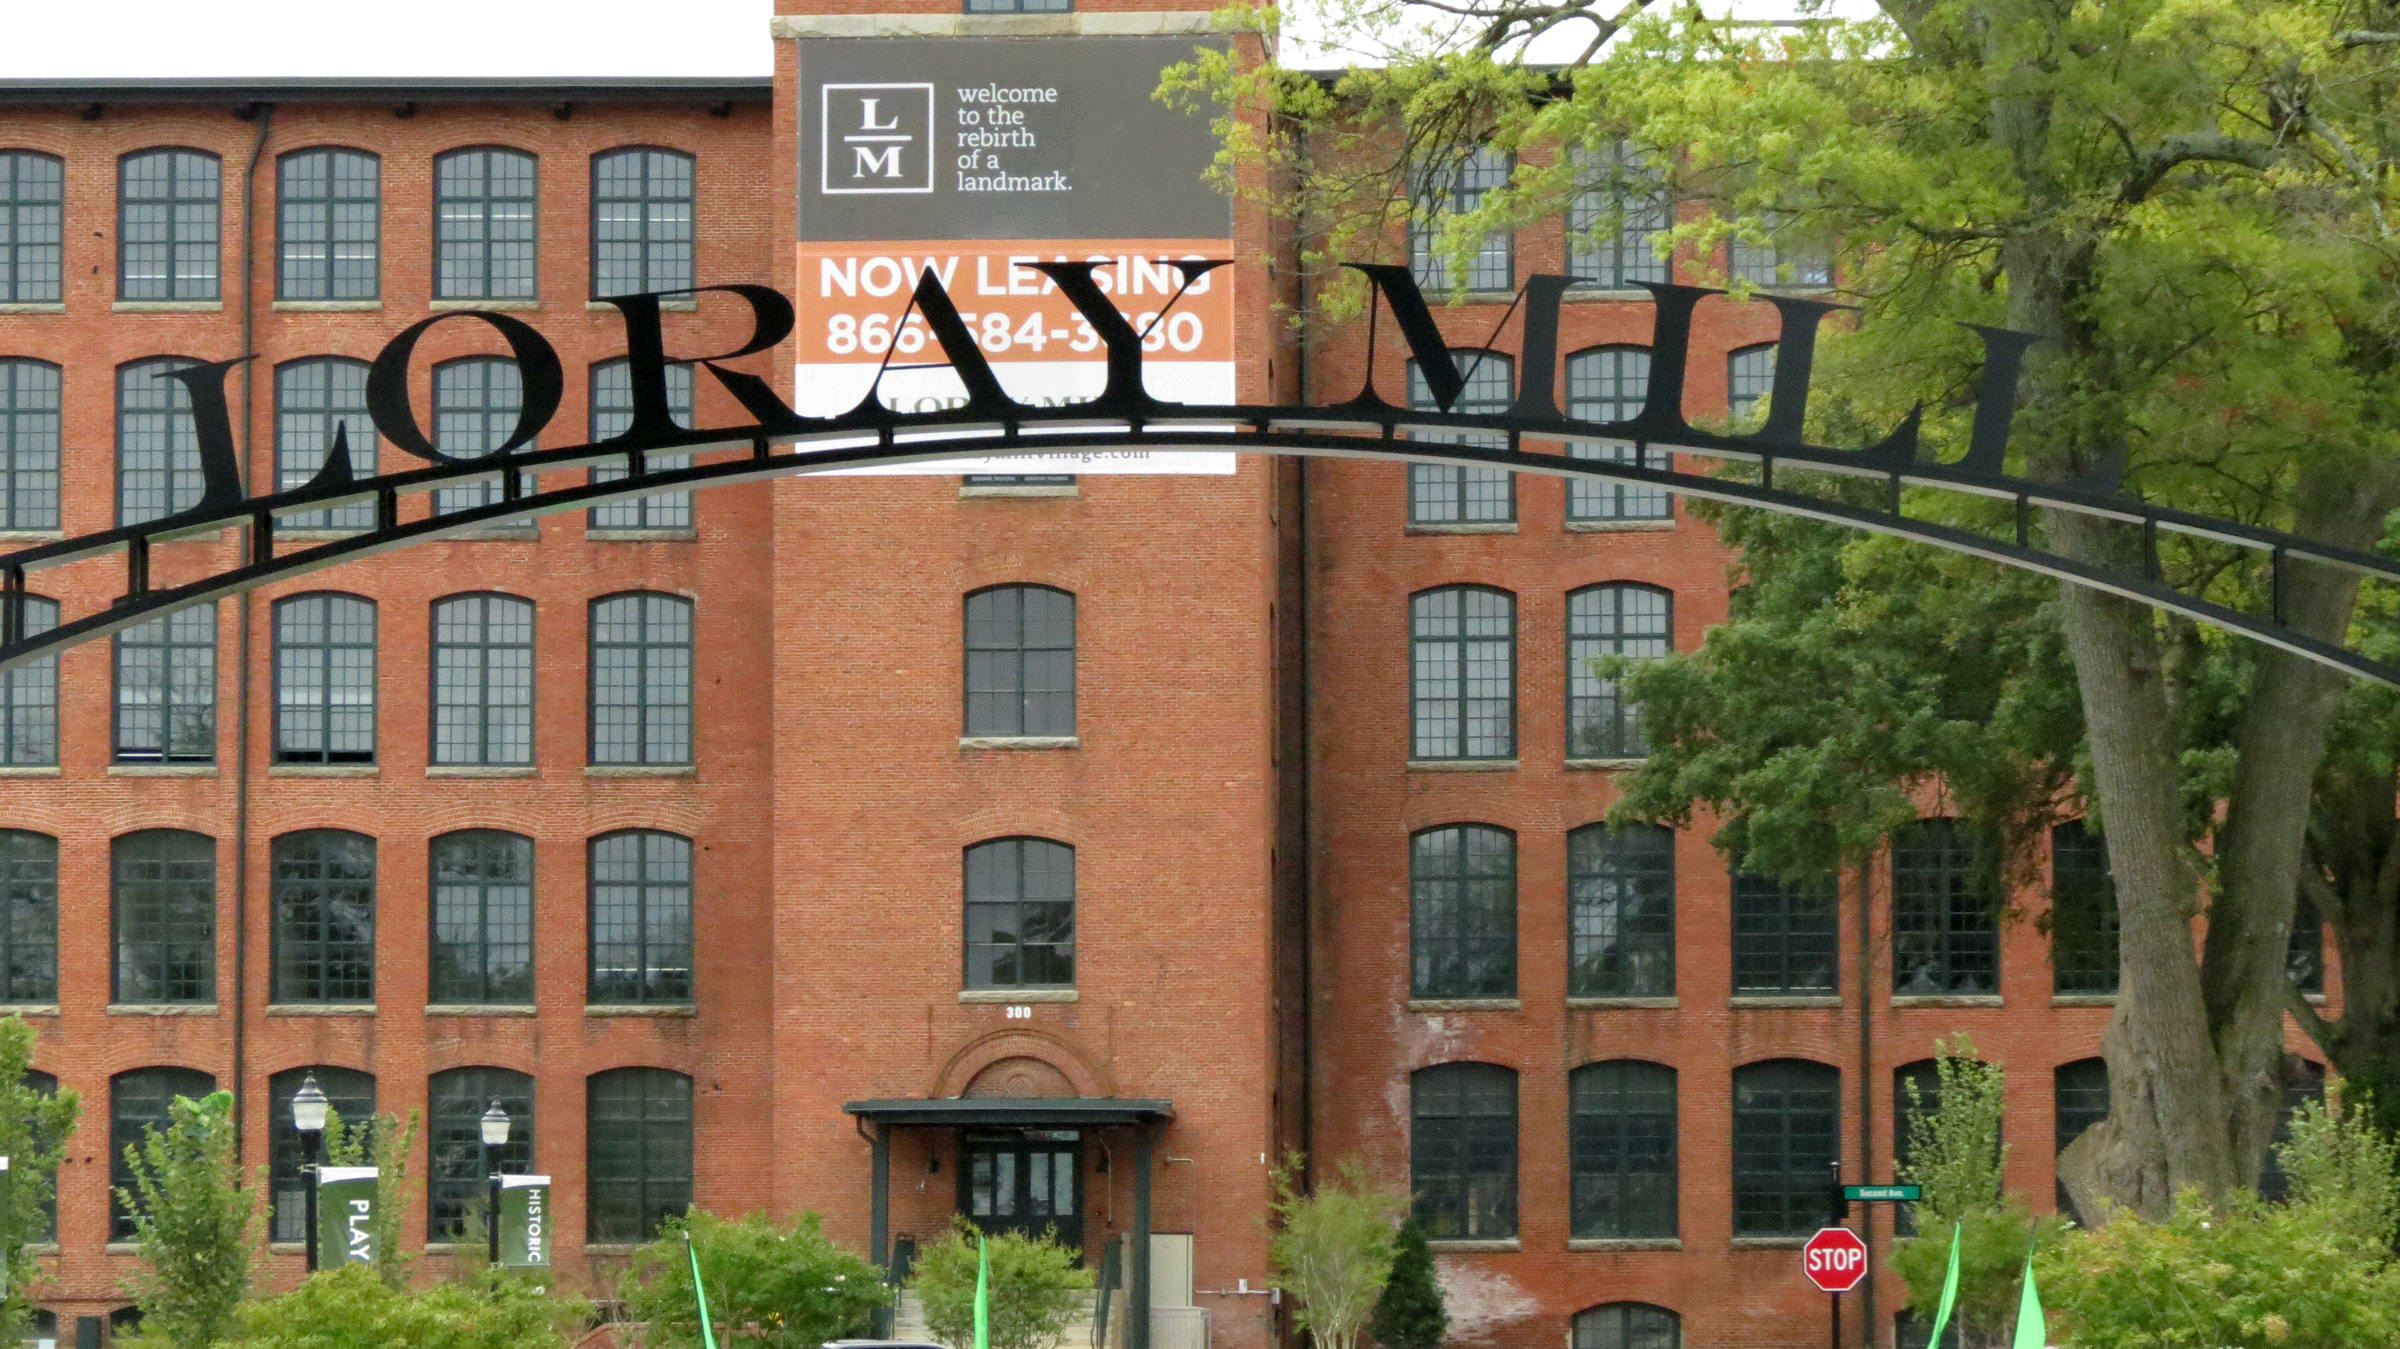 Loray Mill Event Hall<a href=loray-mill-event-hall>→</a><strong>600,000 sqft Renovated Textile Mill</strong>